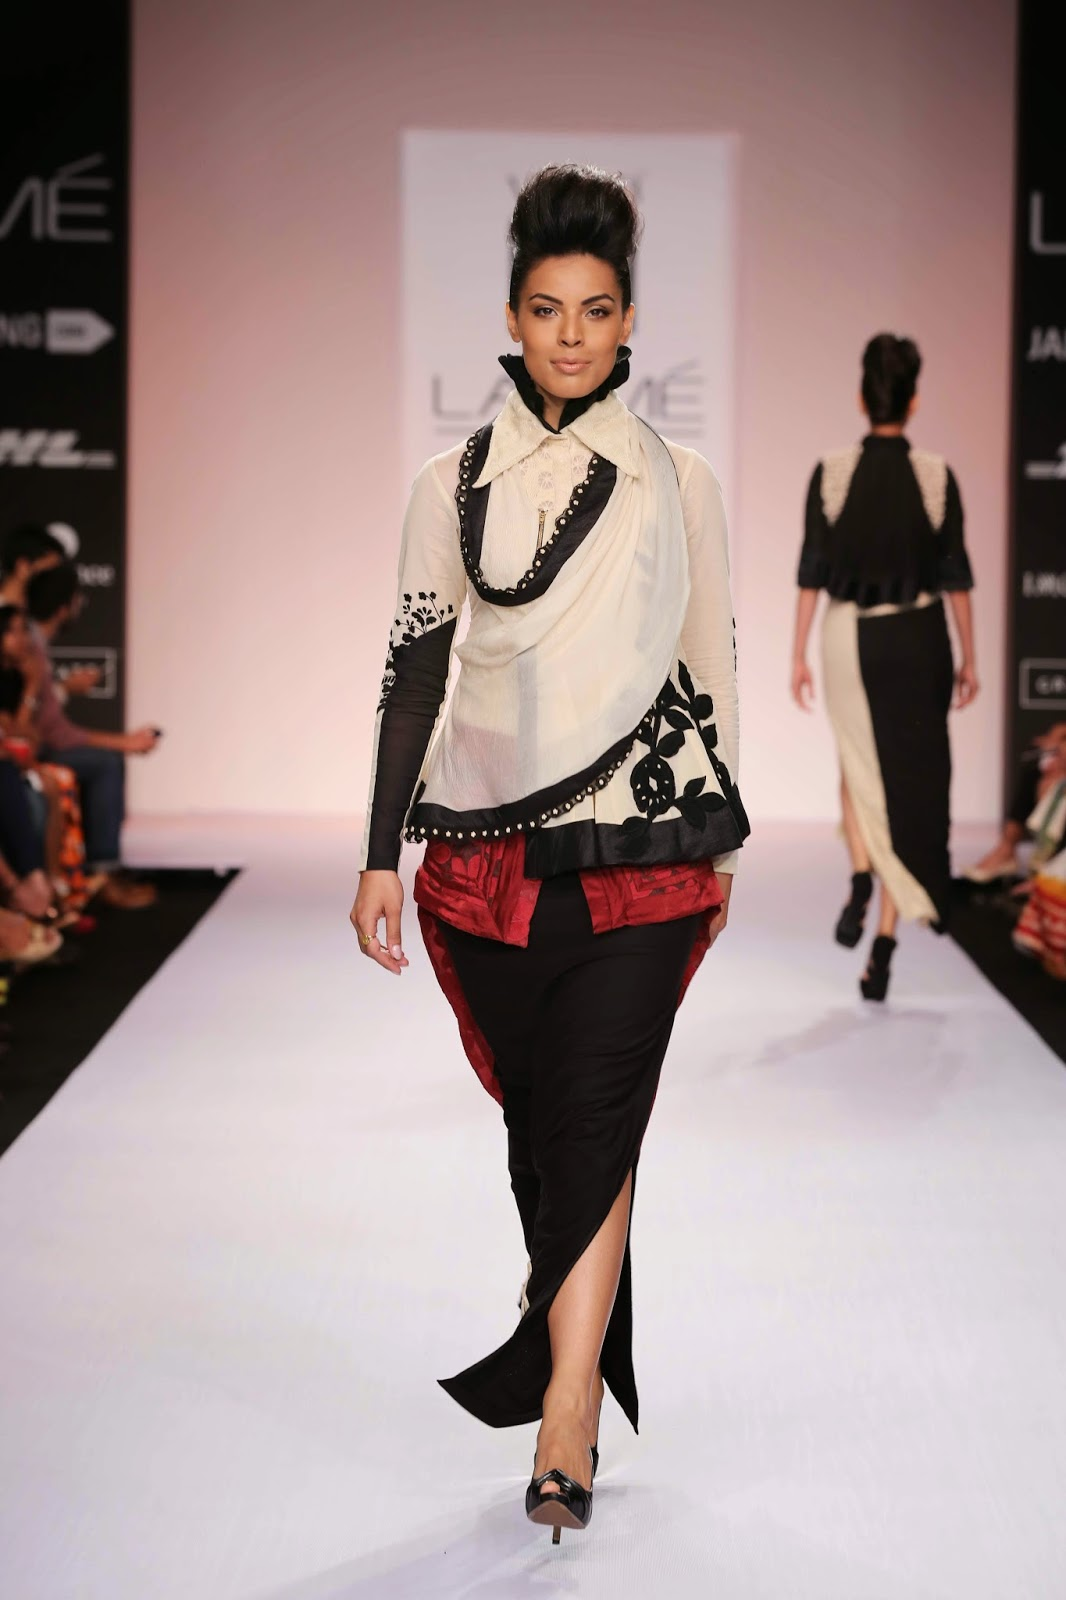 """SHIKHA GROVER AND VINITA ADHIKARI PRESENTED AN INNOVATIVE BEEHIVE OF STYLISH CREATIONS AT LAKMÉ FASHION WEEK SUMMER/RESORT 2014 Taking a cue from nature, the designing duo Shikha Grover and Vinita Adhikari presented an exciting collection called """"Beehive Yourself"""" for their label """"Ilk"""" at Lakmé Fashion Week Summer/Resort 2014."""